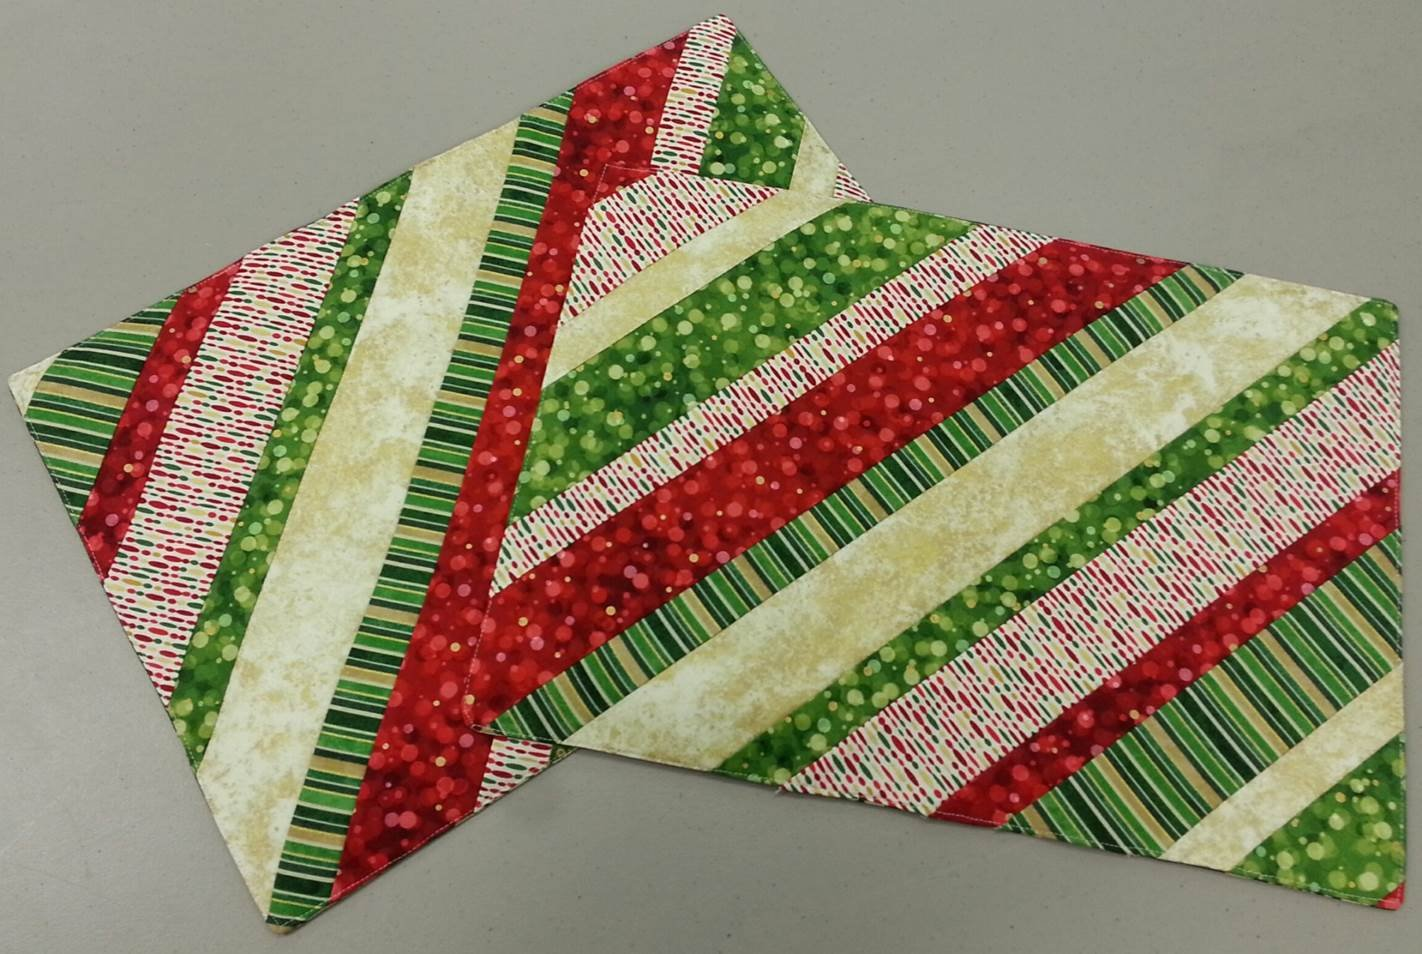 12 Days Of Christmas Series Day 10 Quilt As You Go Placemats